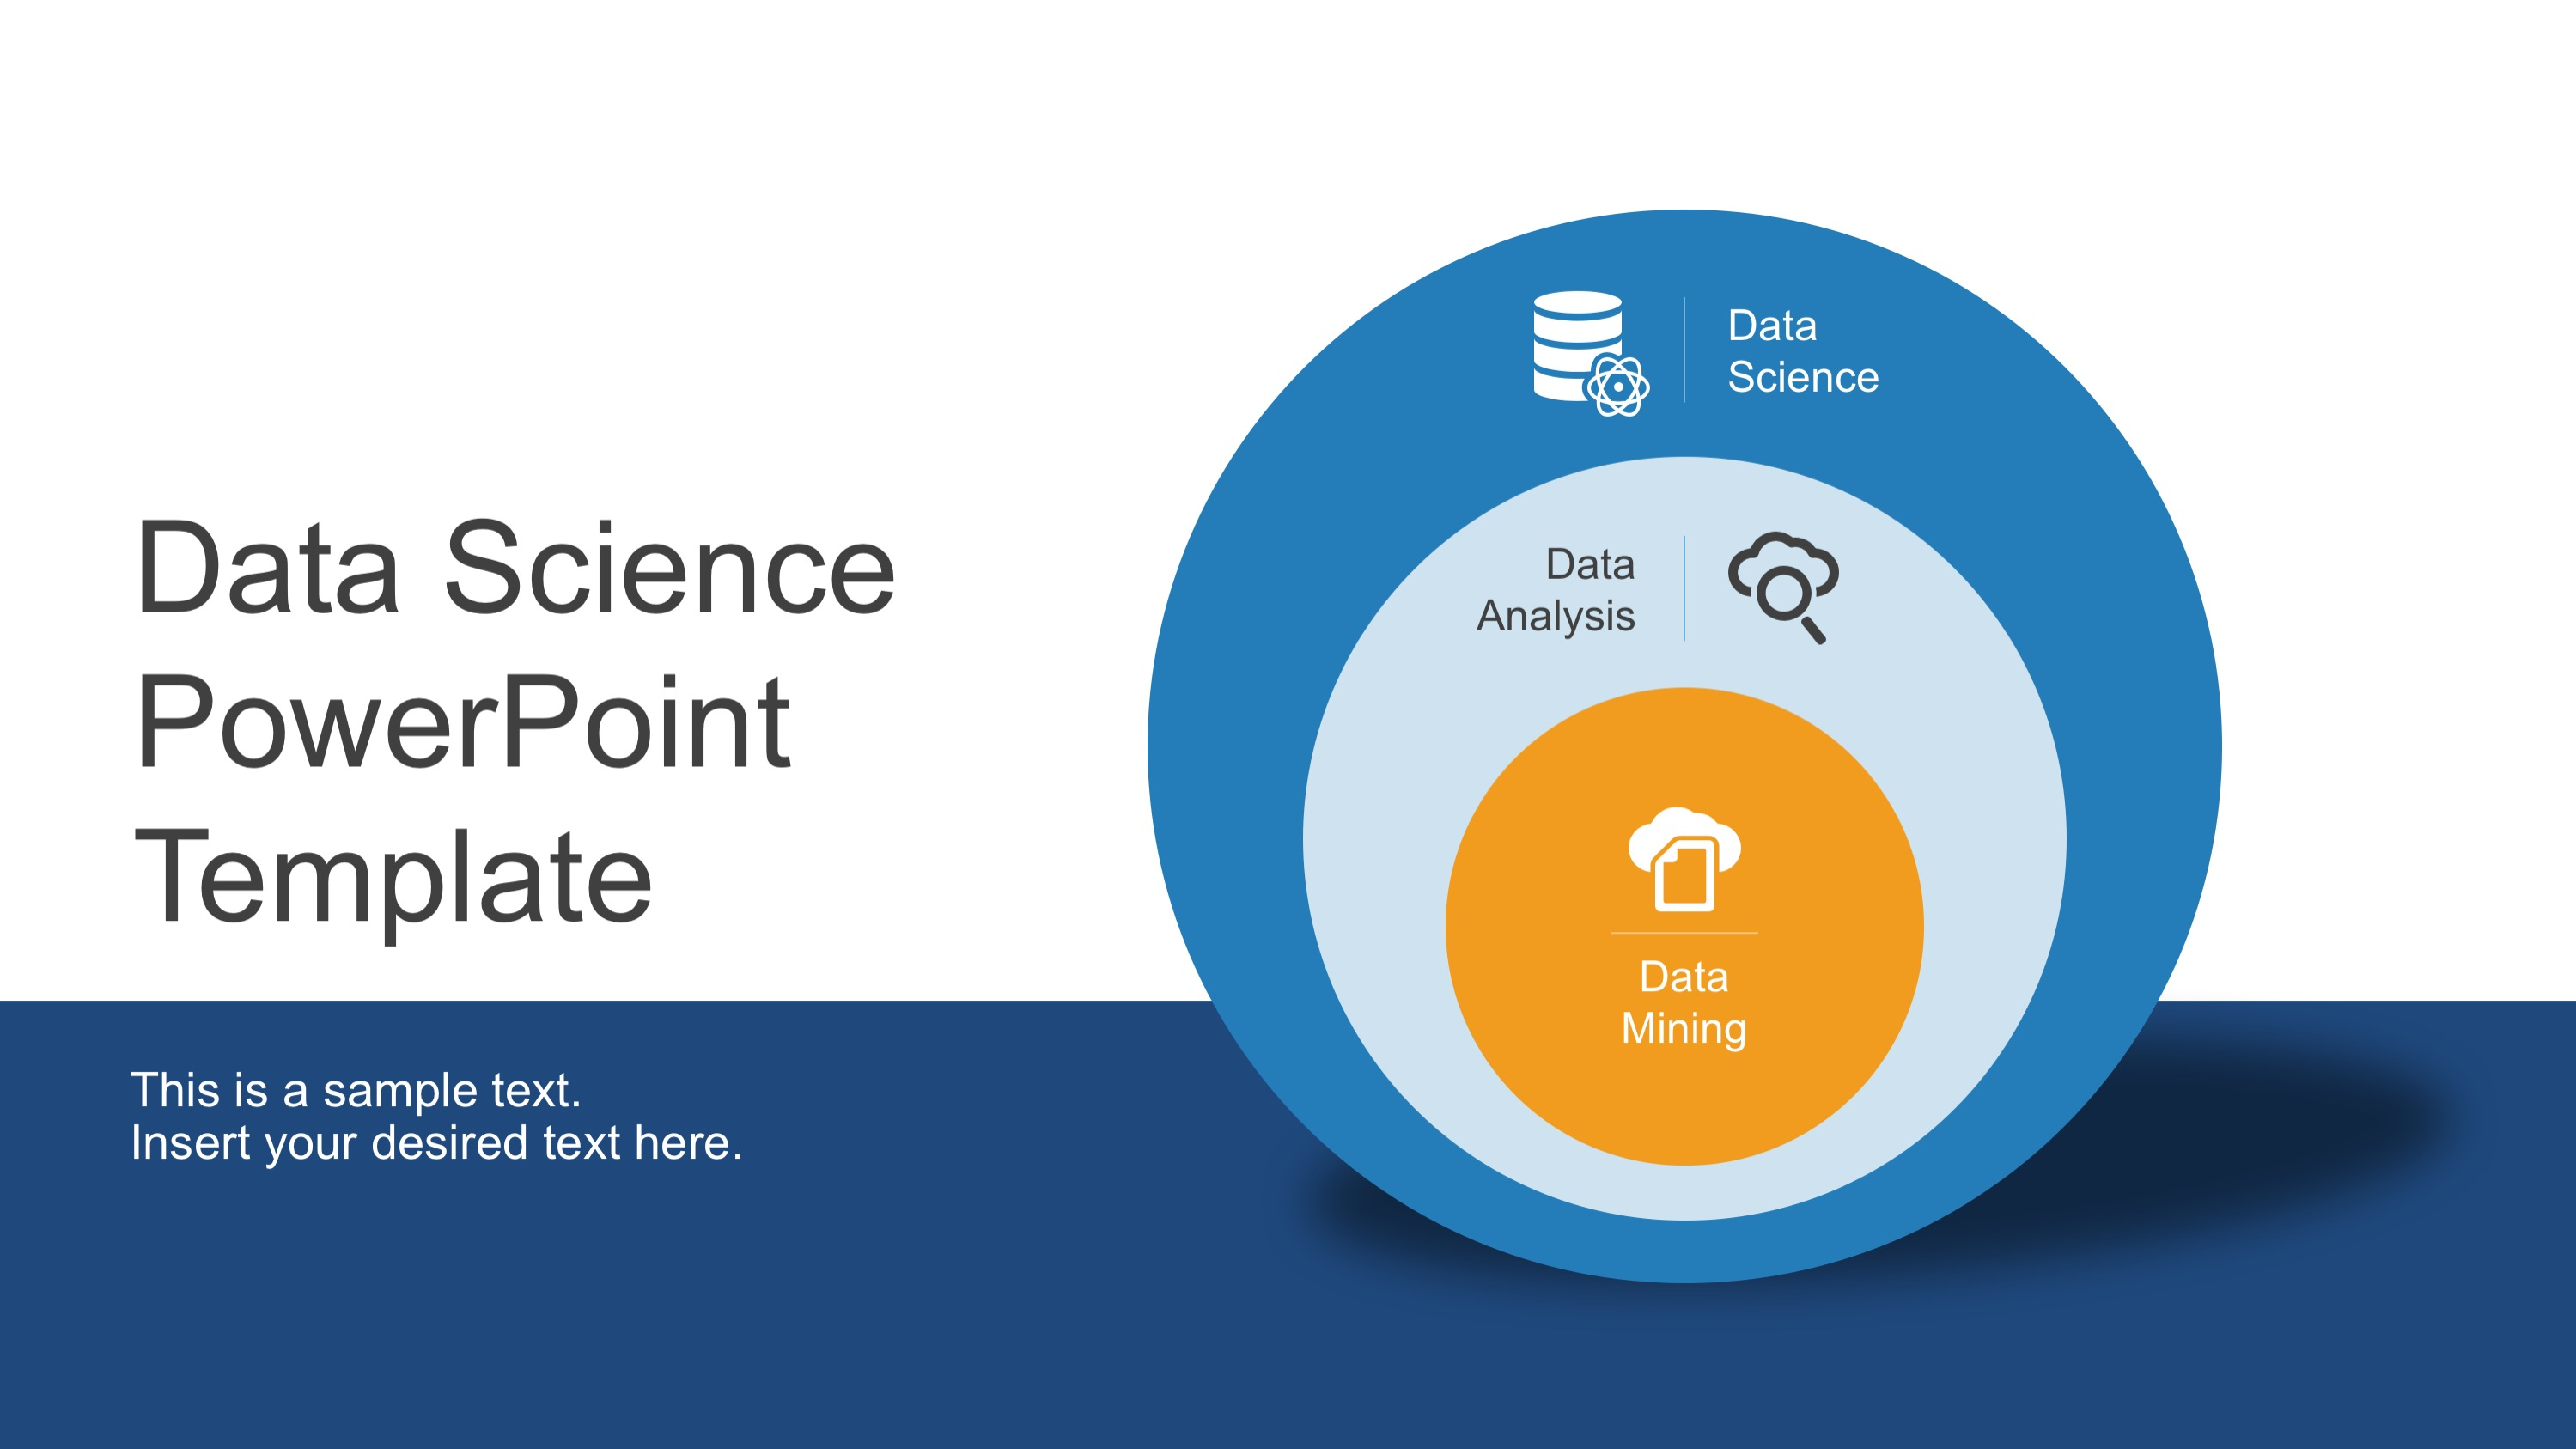 Data warehouse powerpoint templates data science presentation for powerpoint toneelgroepblik